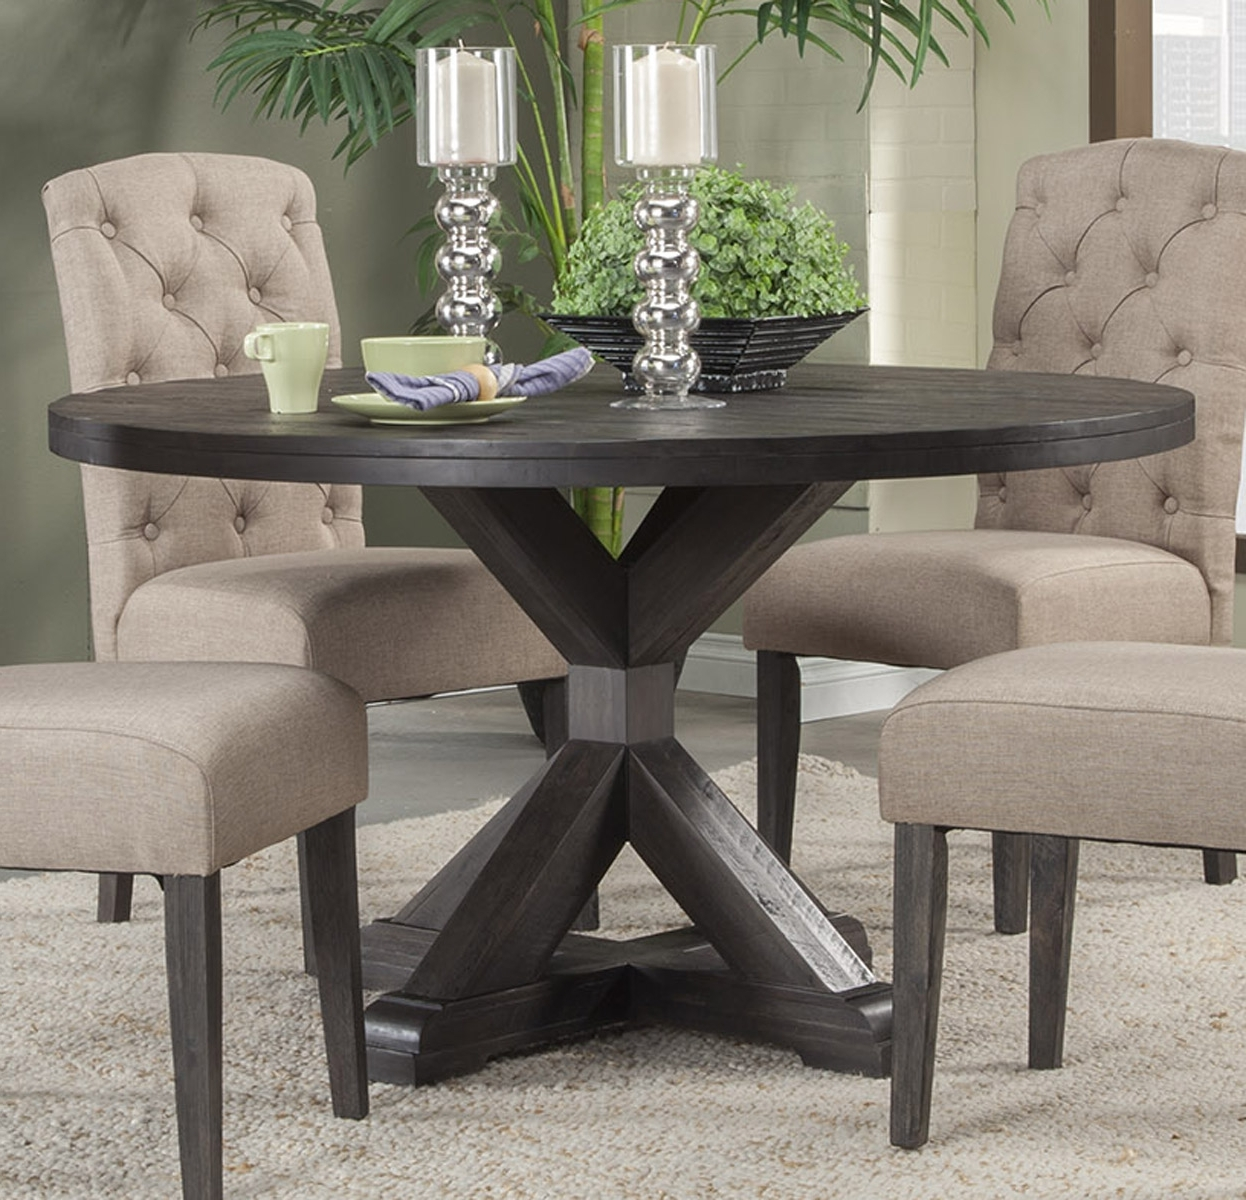 Alpine Furniture Newberry Round Dining Table In Salvaged Grey 1468 Inside 2017 Dining Sets (Gallery 4 of 25)